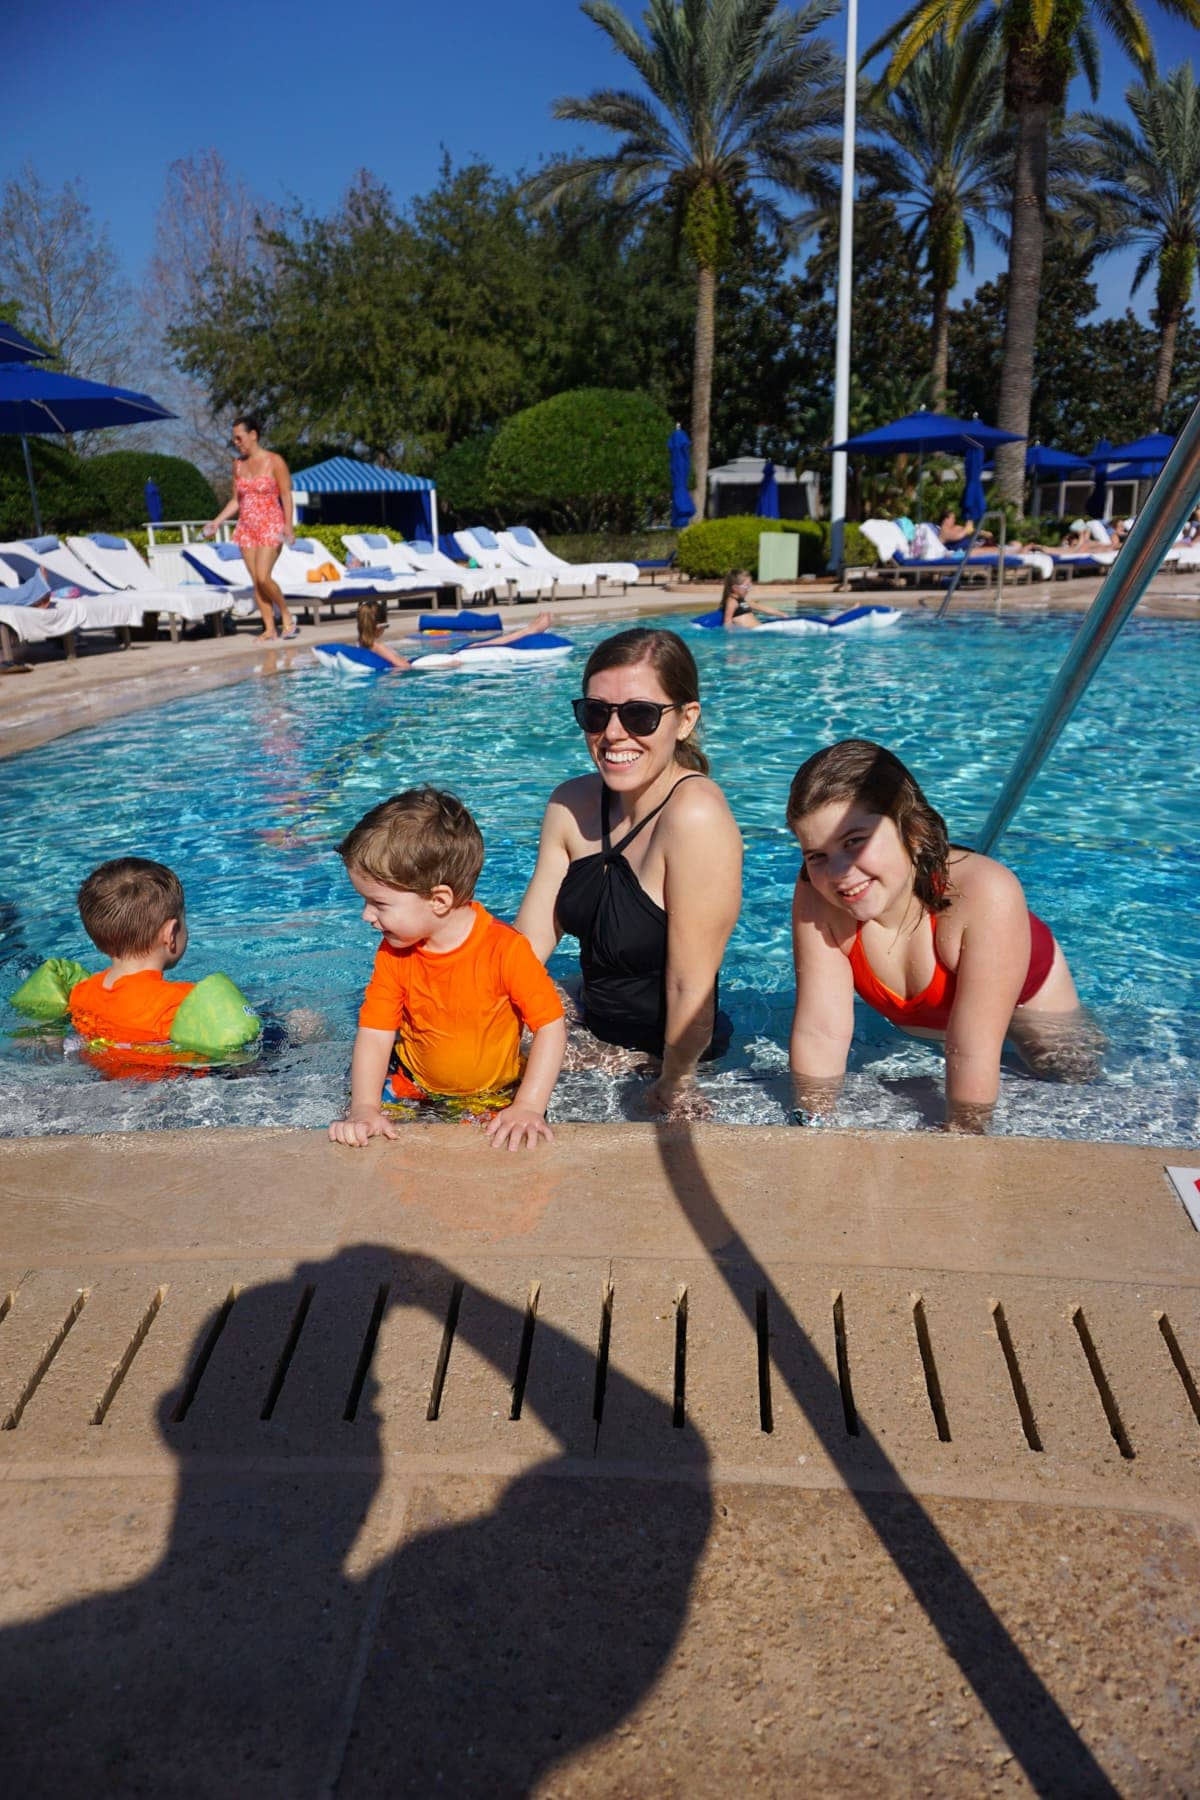 Lauren and the kids in the pool